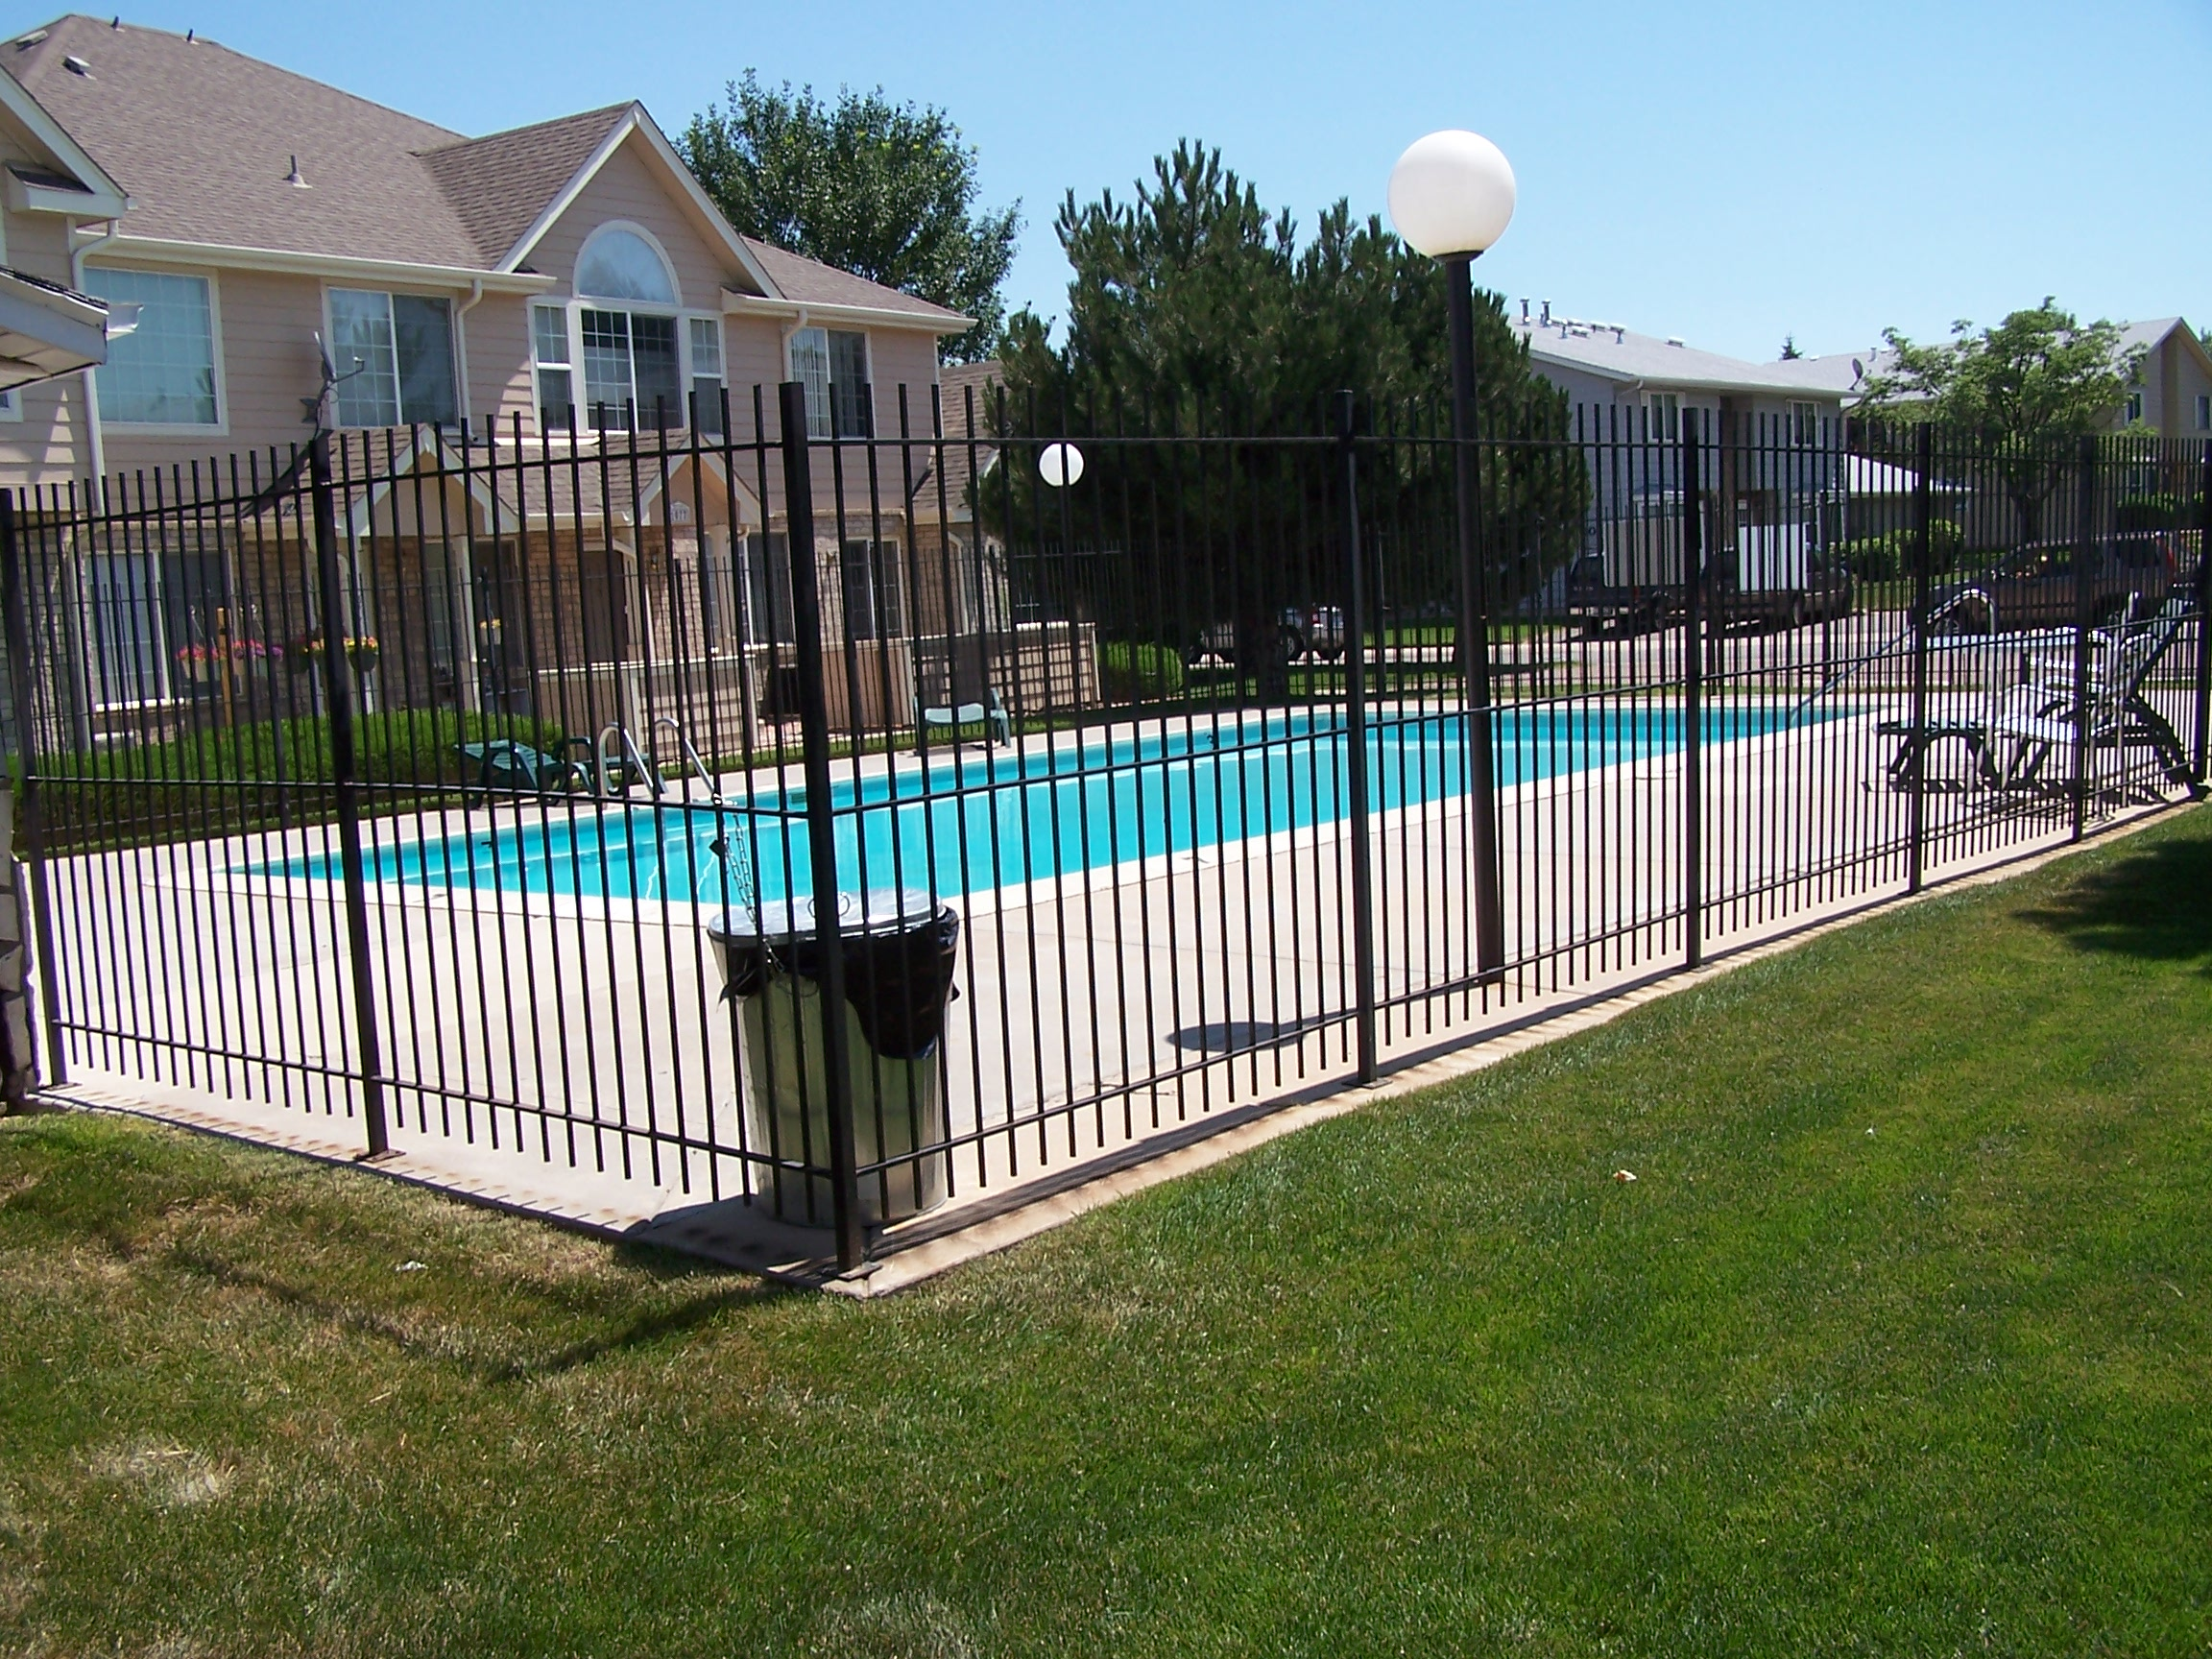 Pool at westbury Farms at Applevalley Condo for sale Westminster Colorado